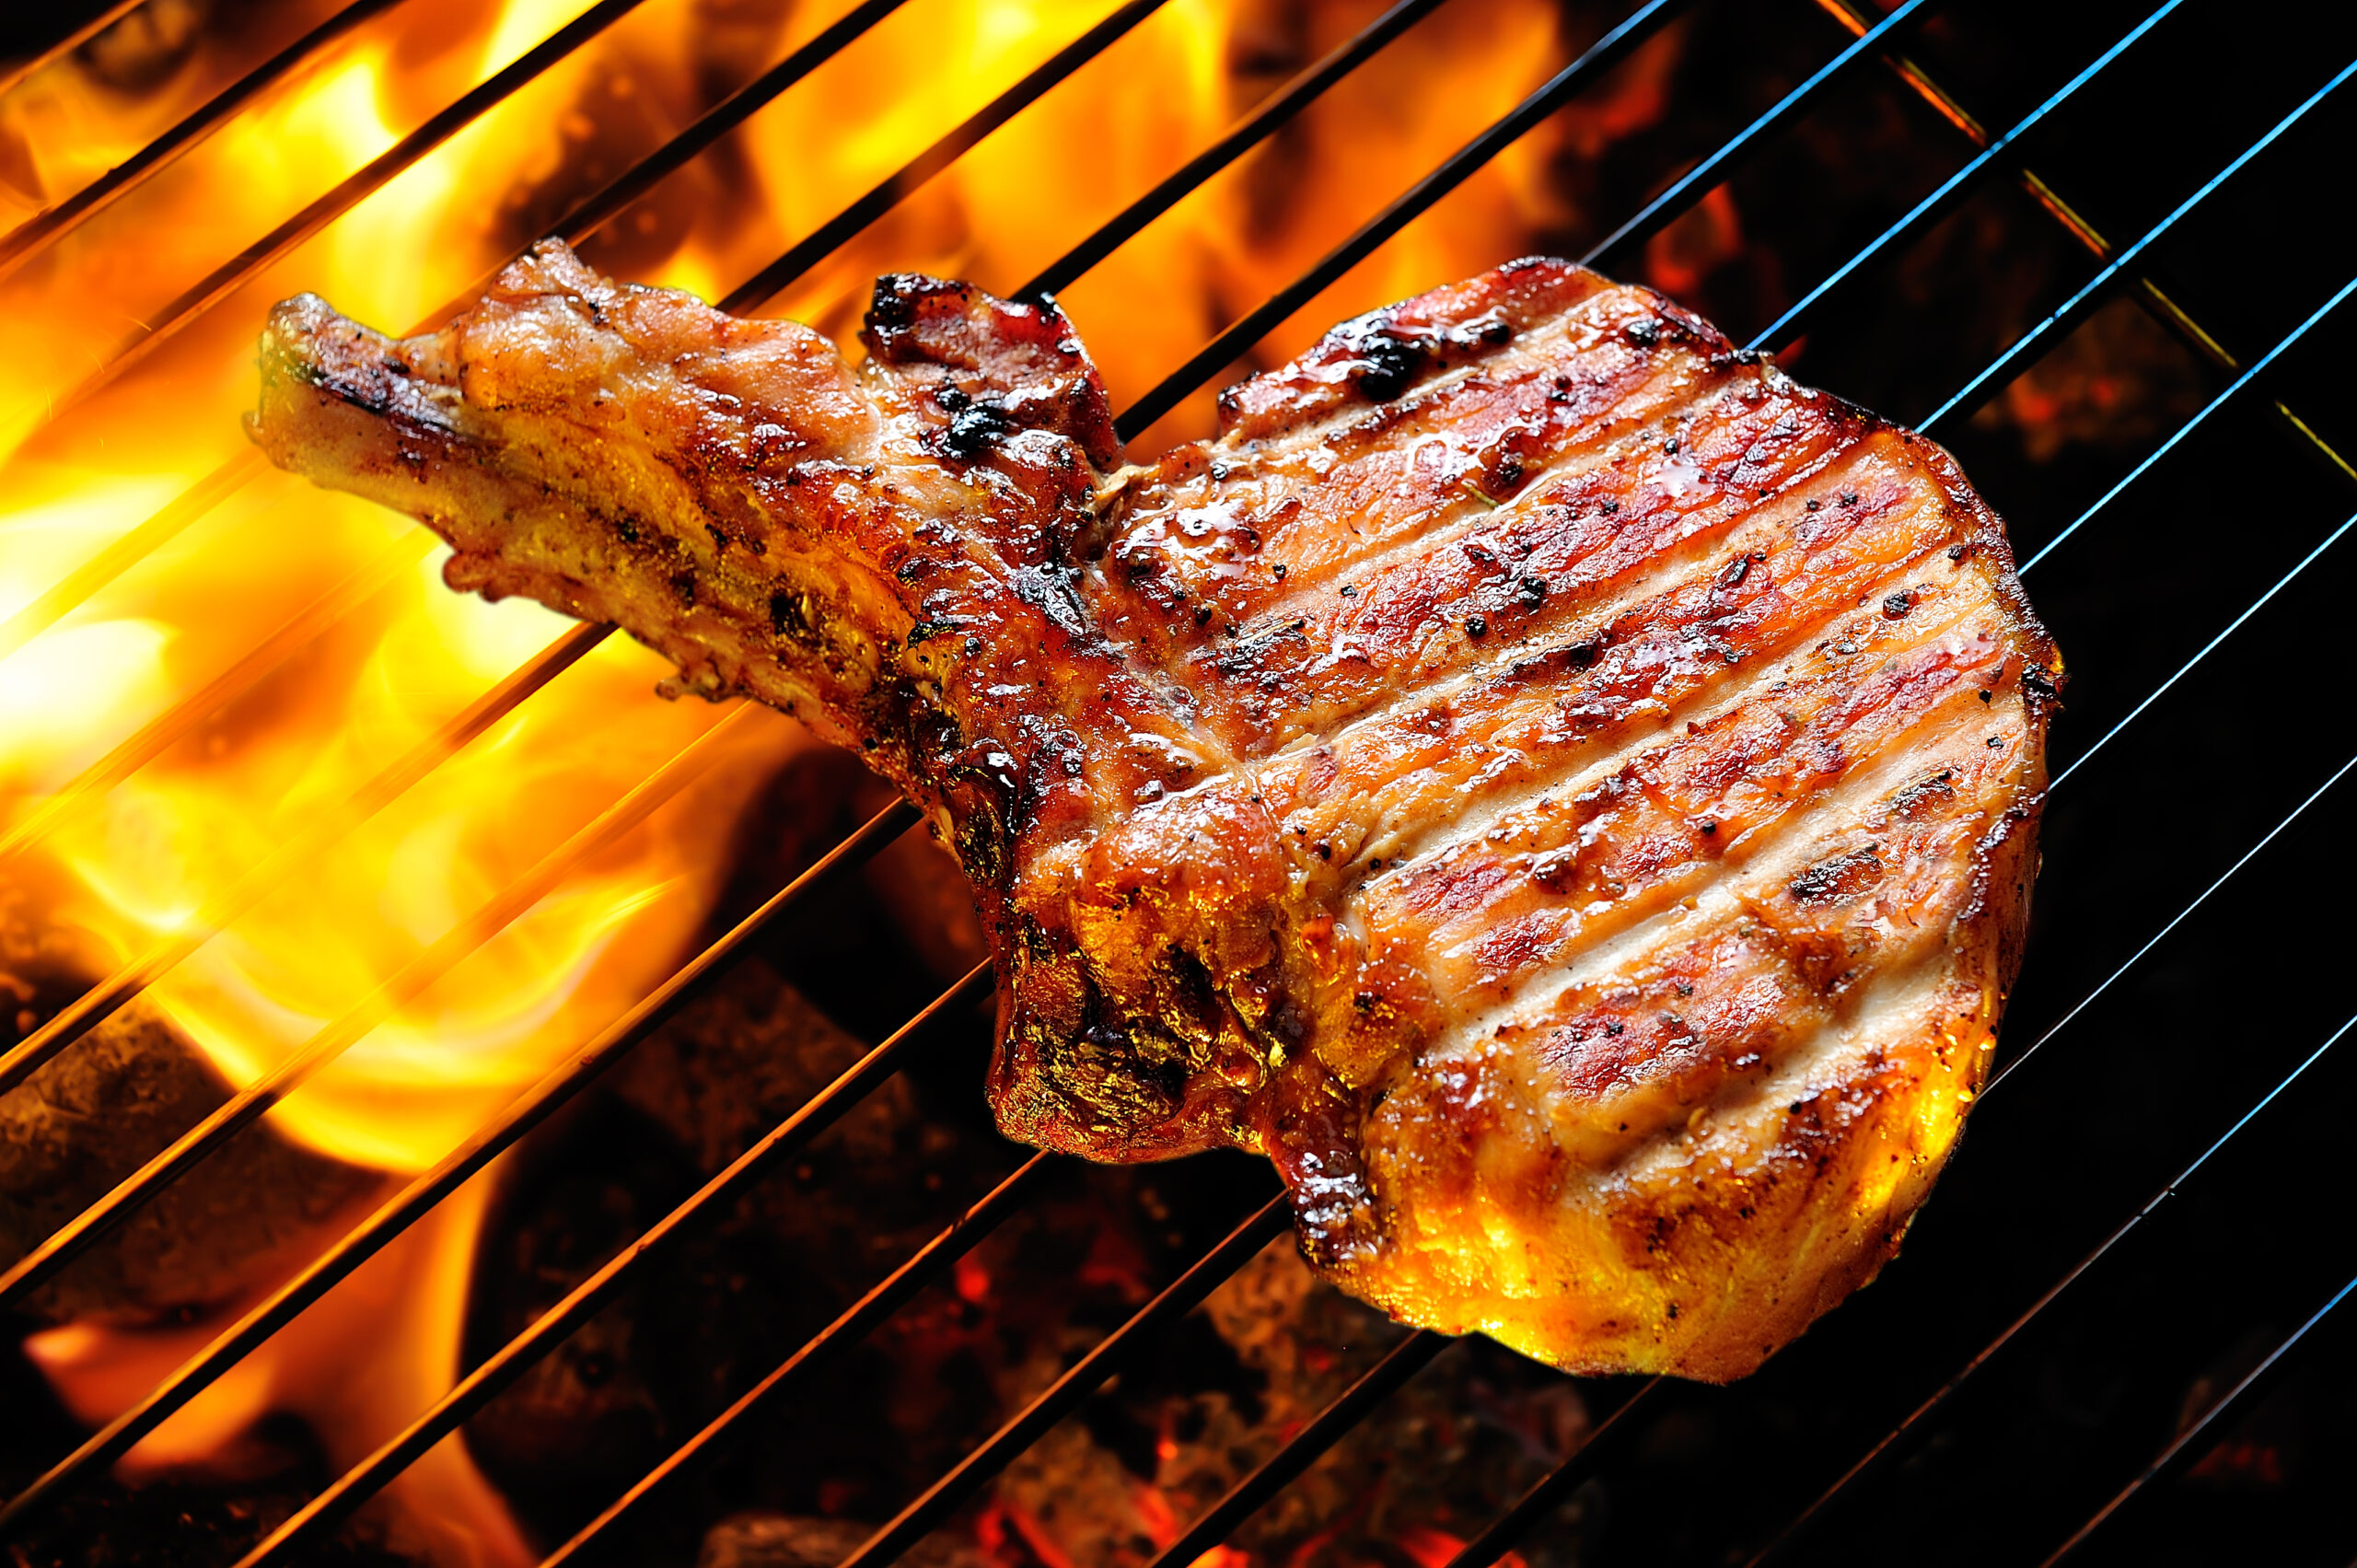 Grilled,pork,steaks,on,the,grill